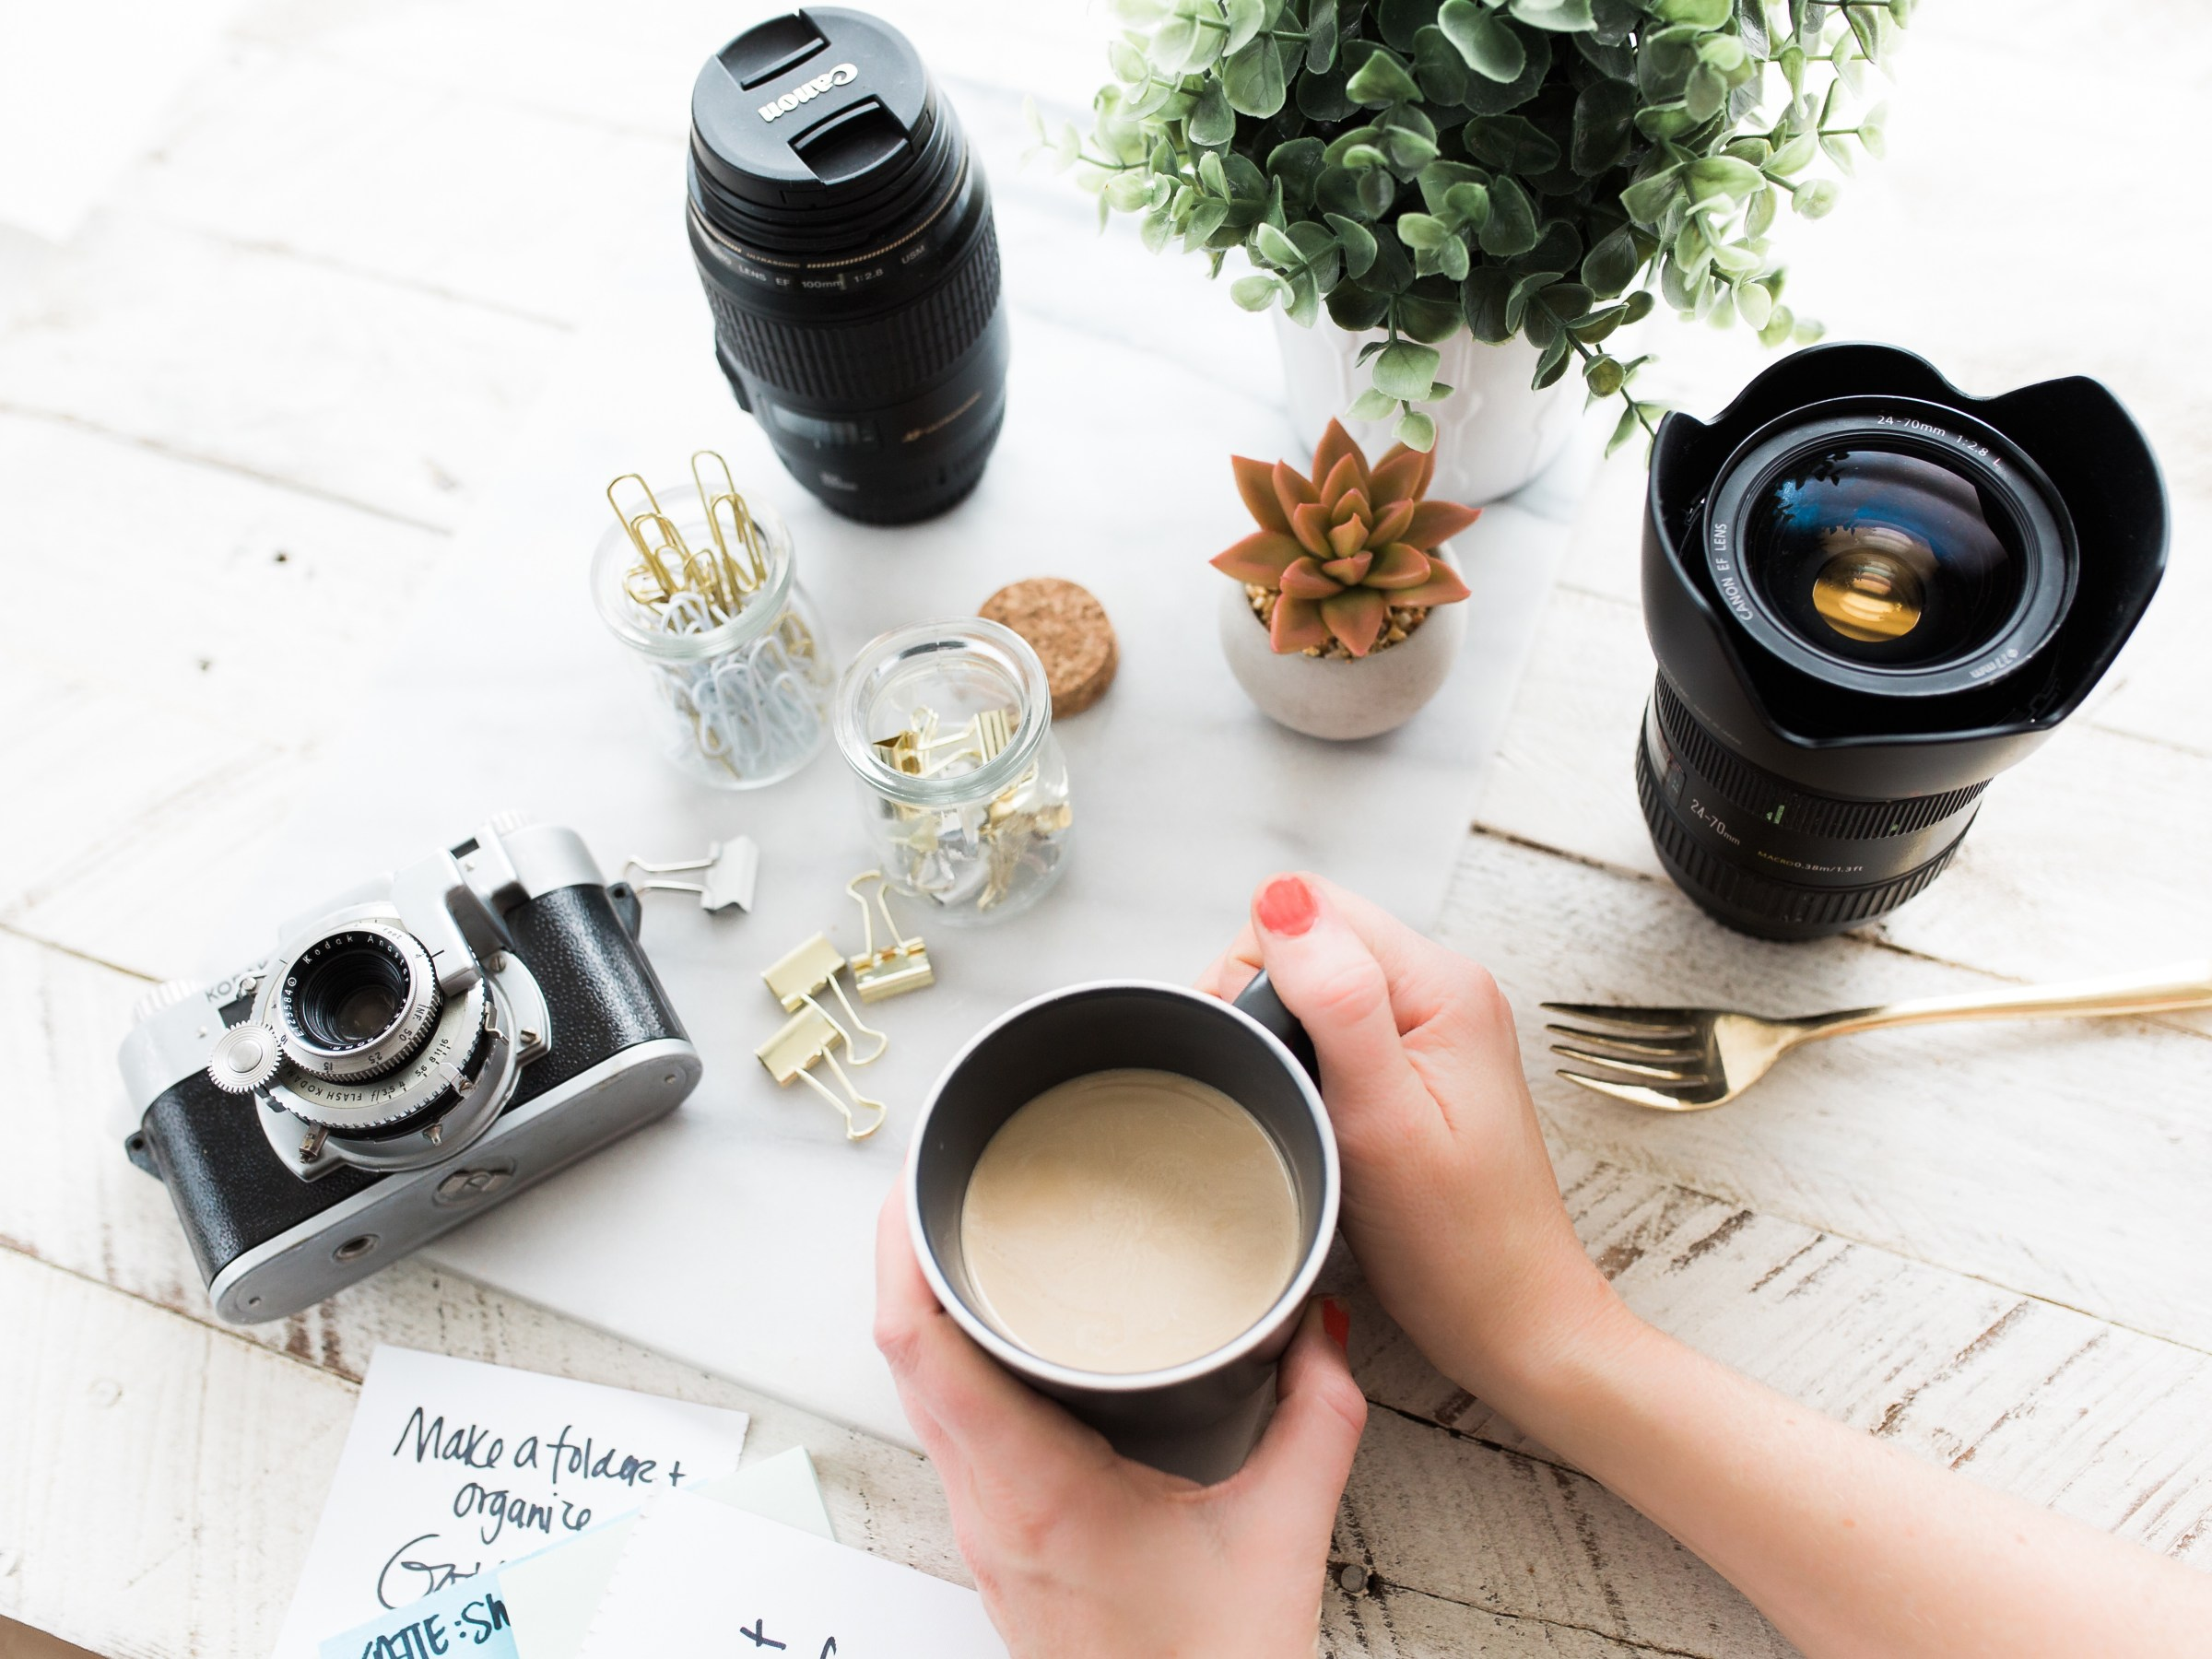 Unsplash picture of woman holding a cup of coffee at a desk